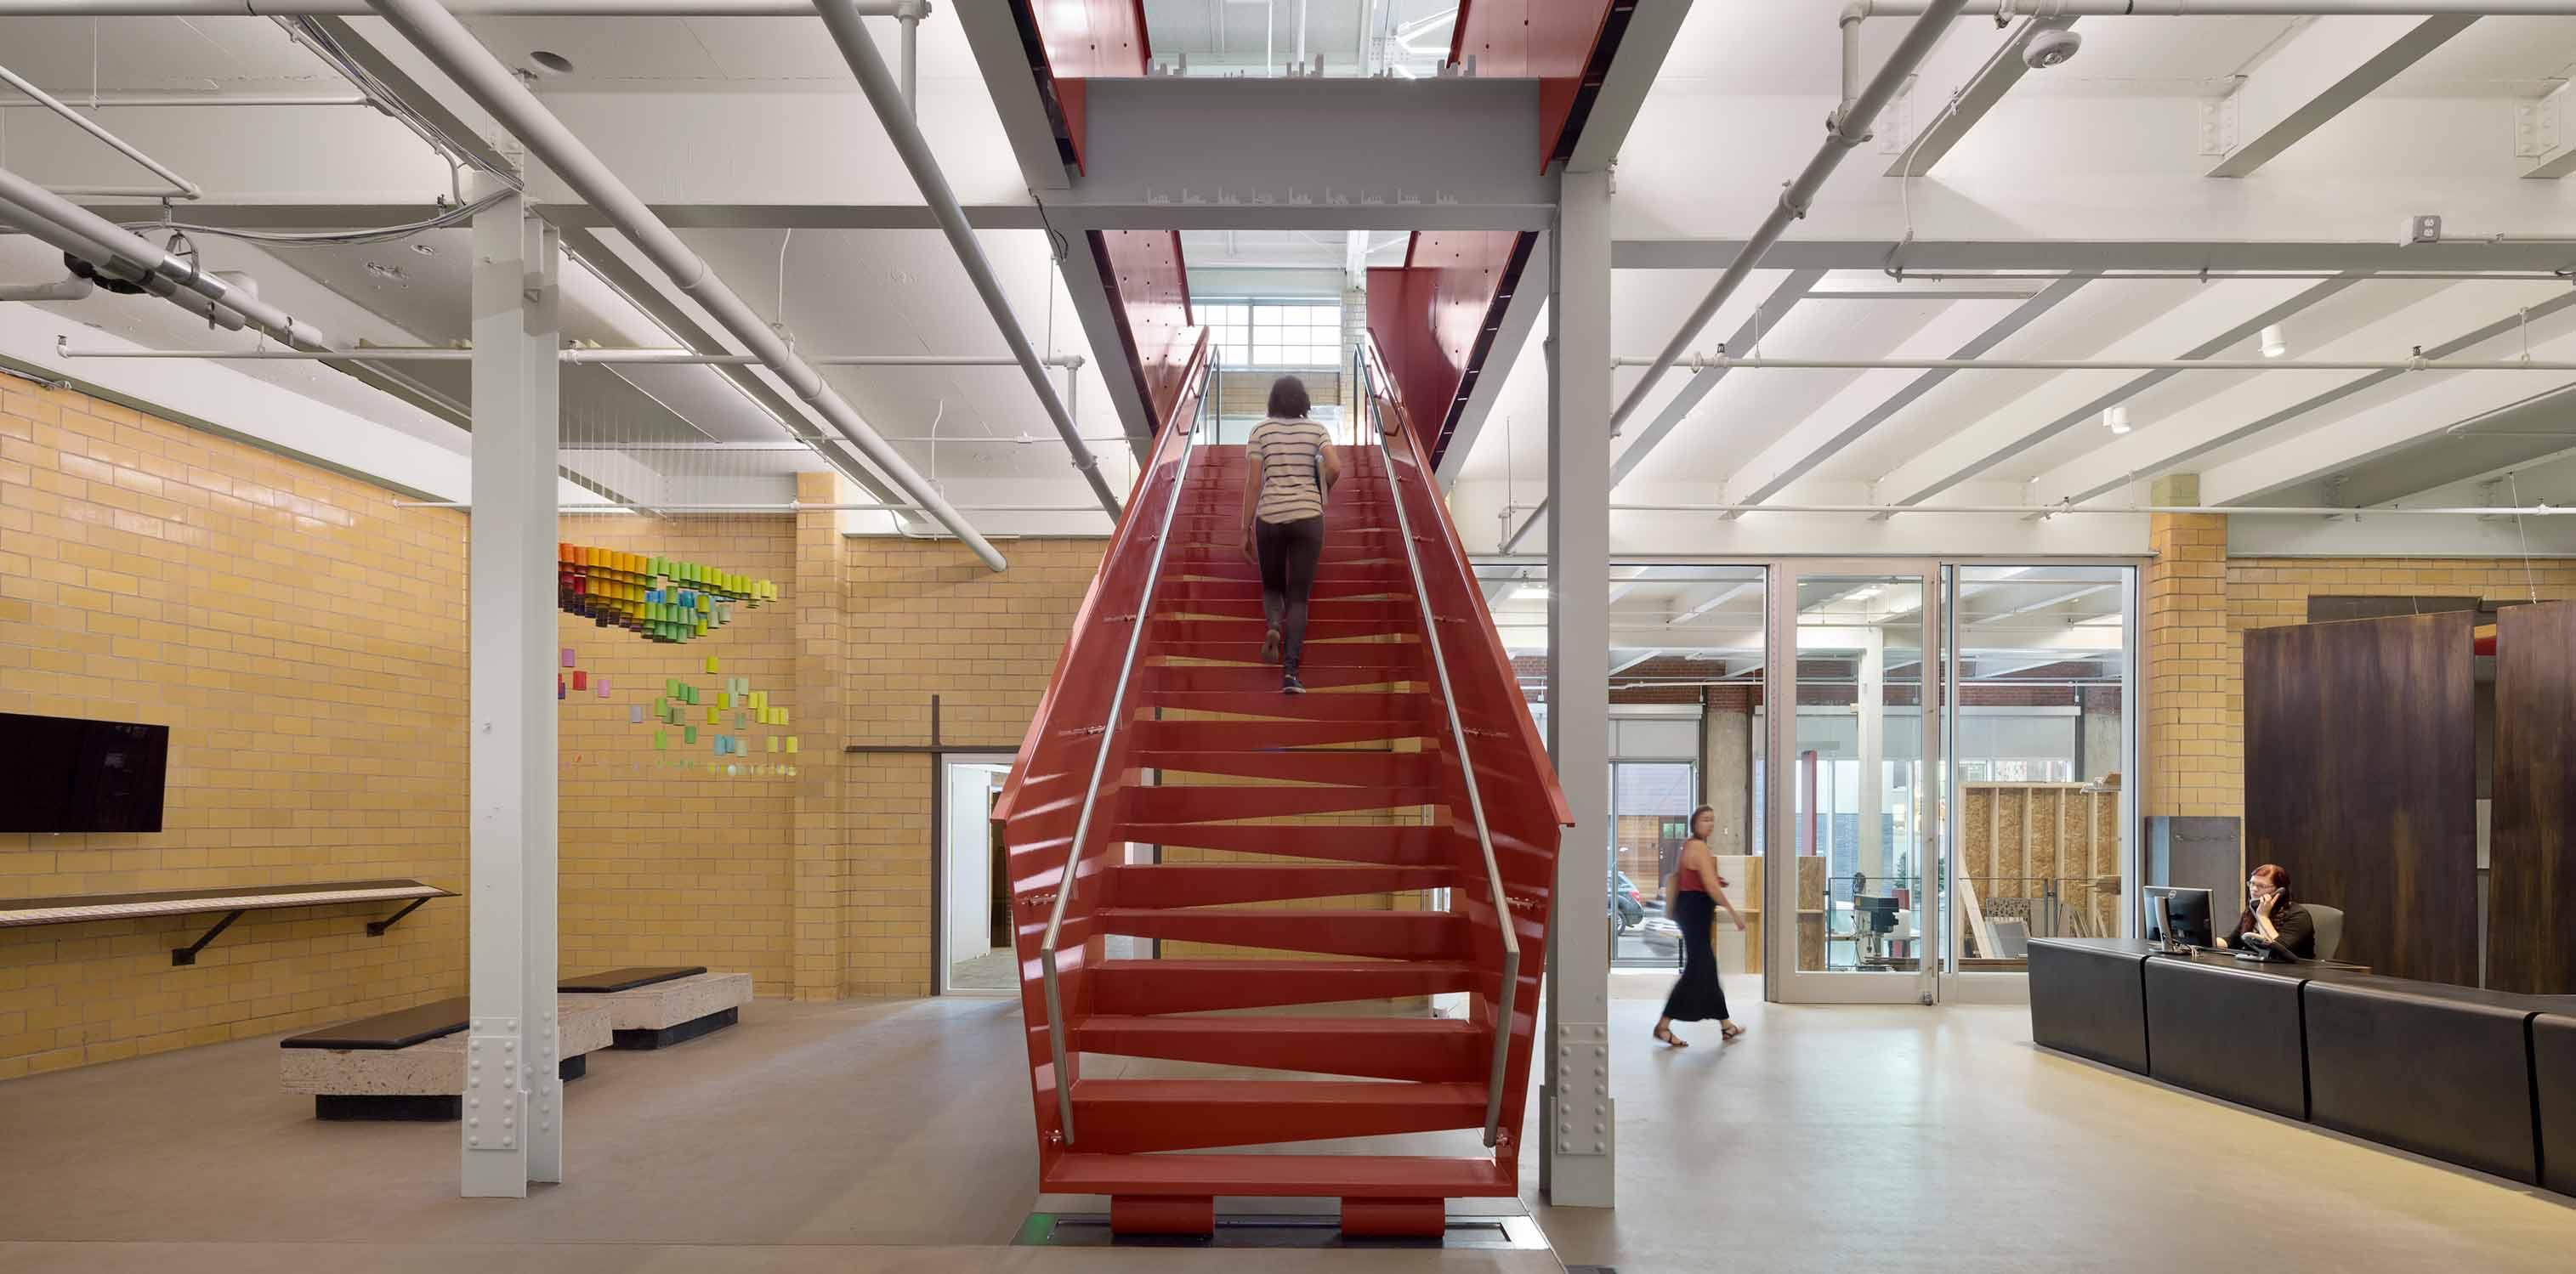 <p>An all-steel stairway greets visitors on the first floor, which is also used for hosting research activities, office meetings, events, and exhibits.<br> <br /><small>©Michael Moran</small></p>